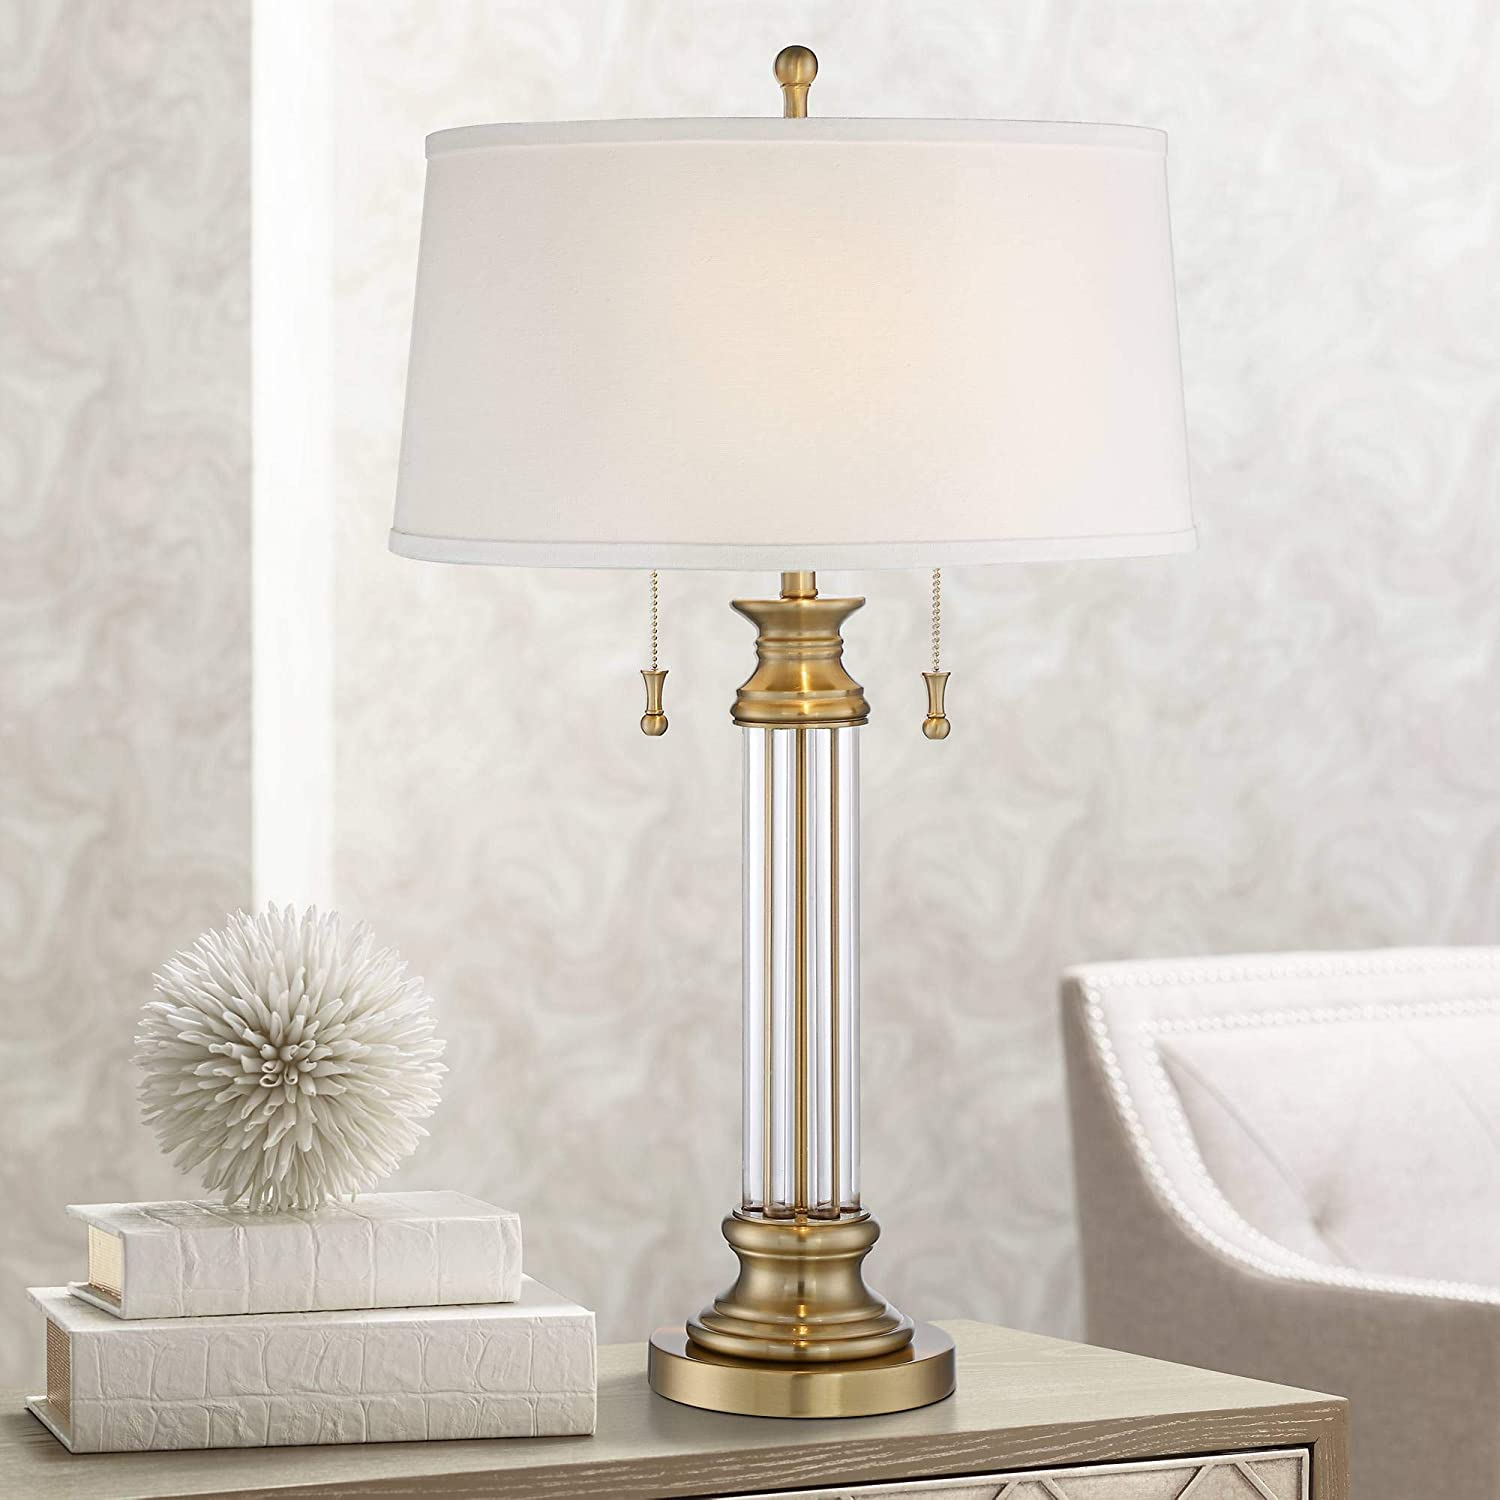 Rolland Antique Brass Crystal Column Lamp with Table Top Dimmer - Vienna Full Spectrum